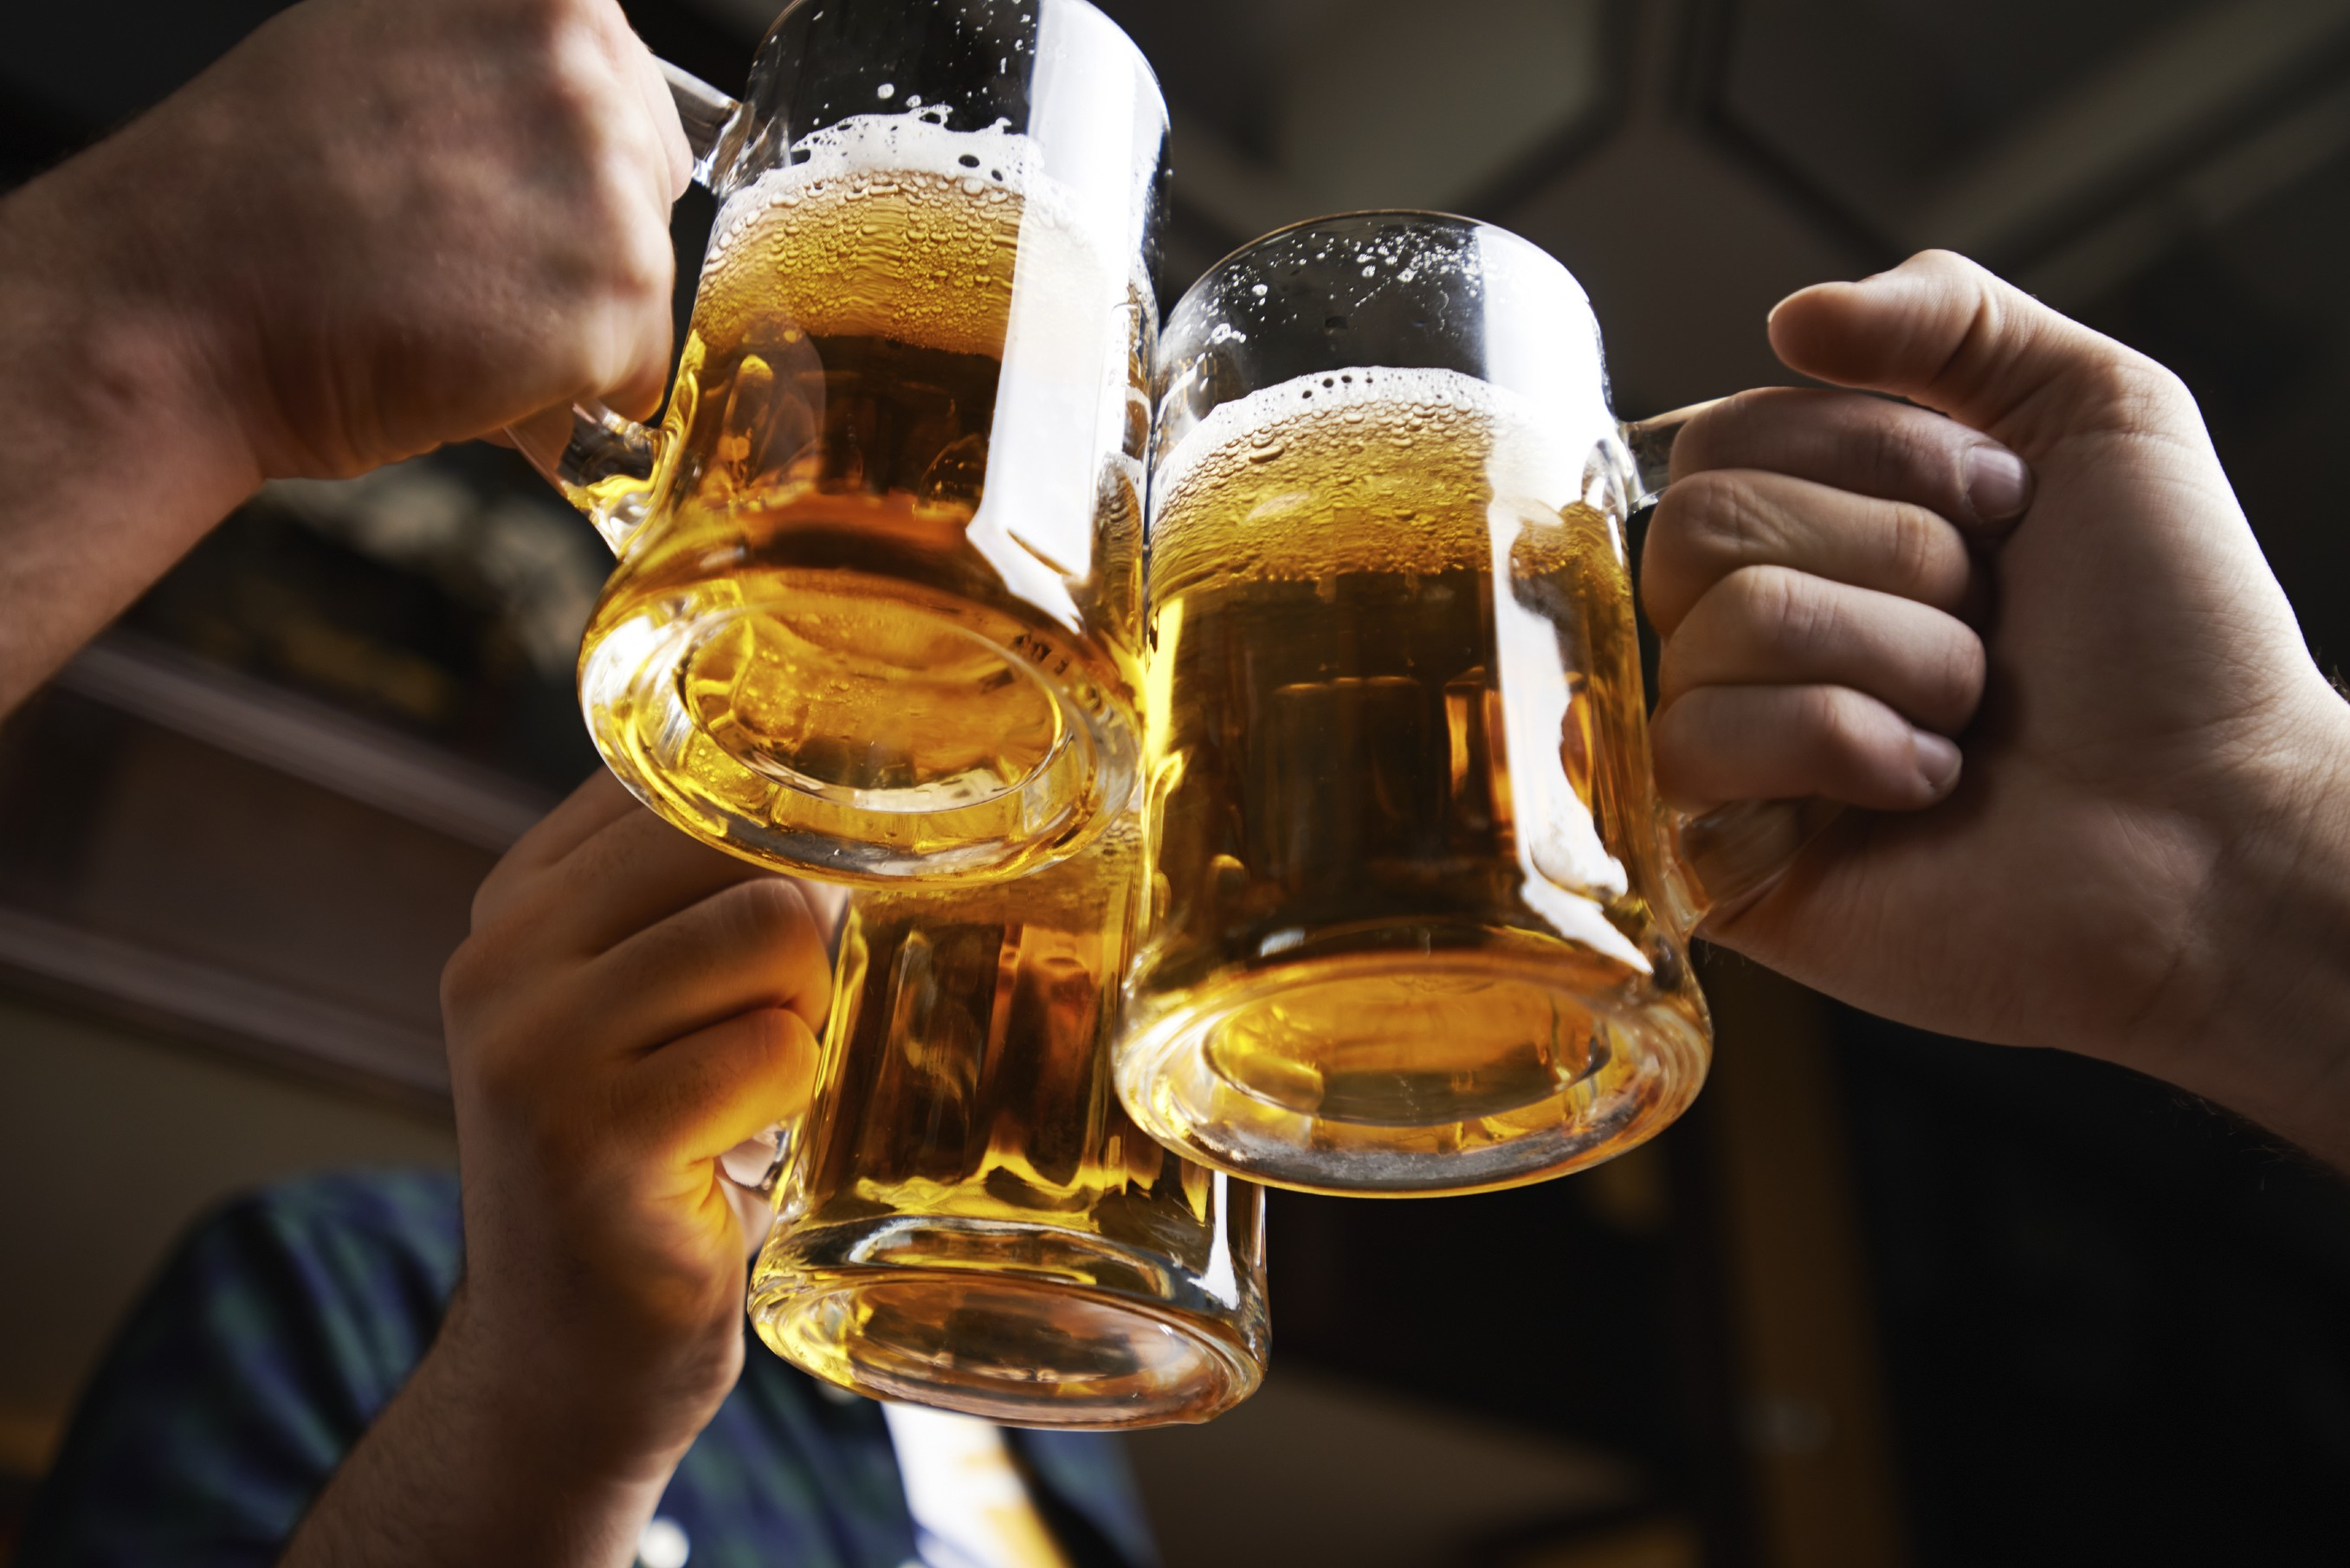 Three beer mugs are held together for a 'cheers'